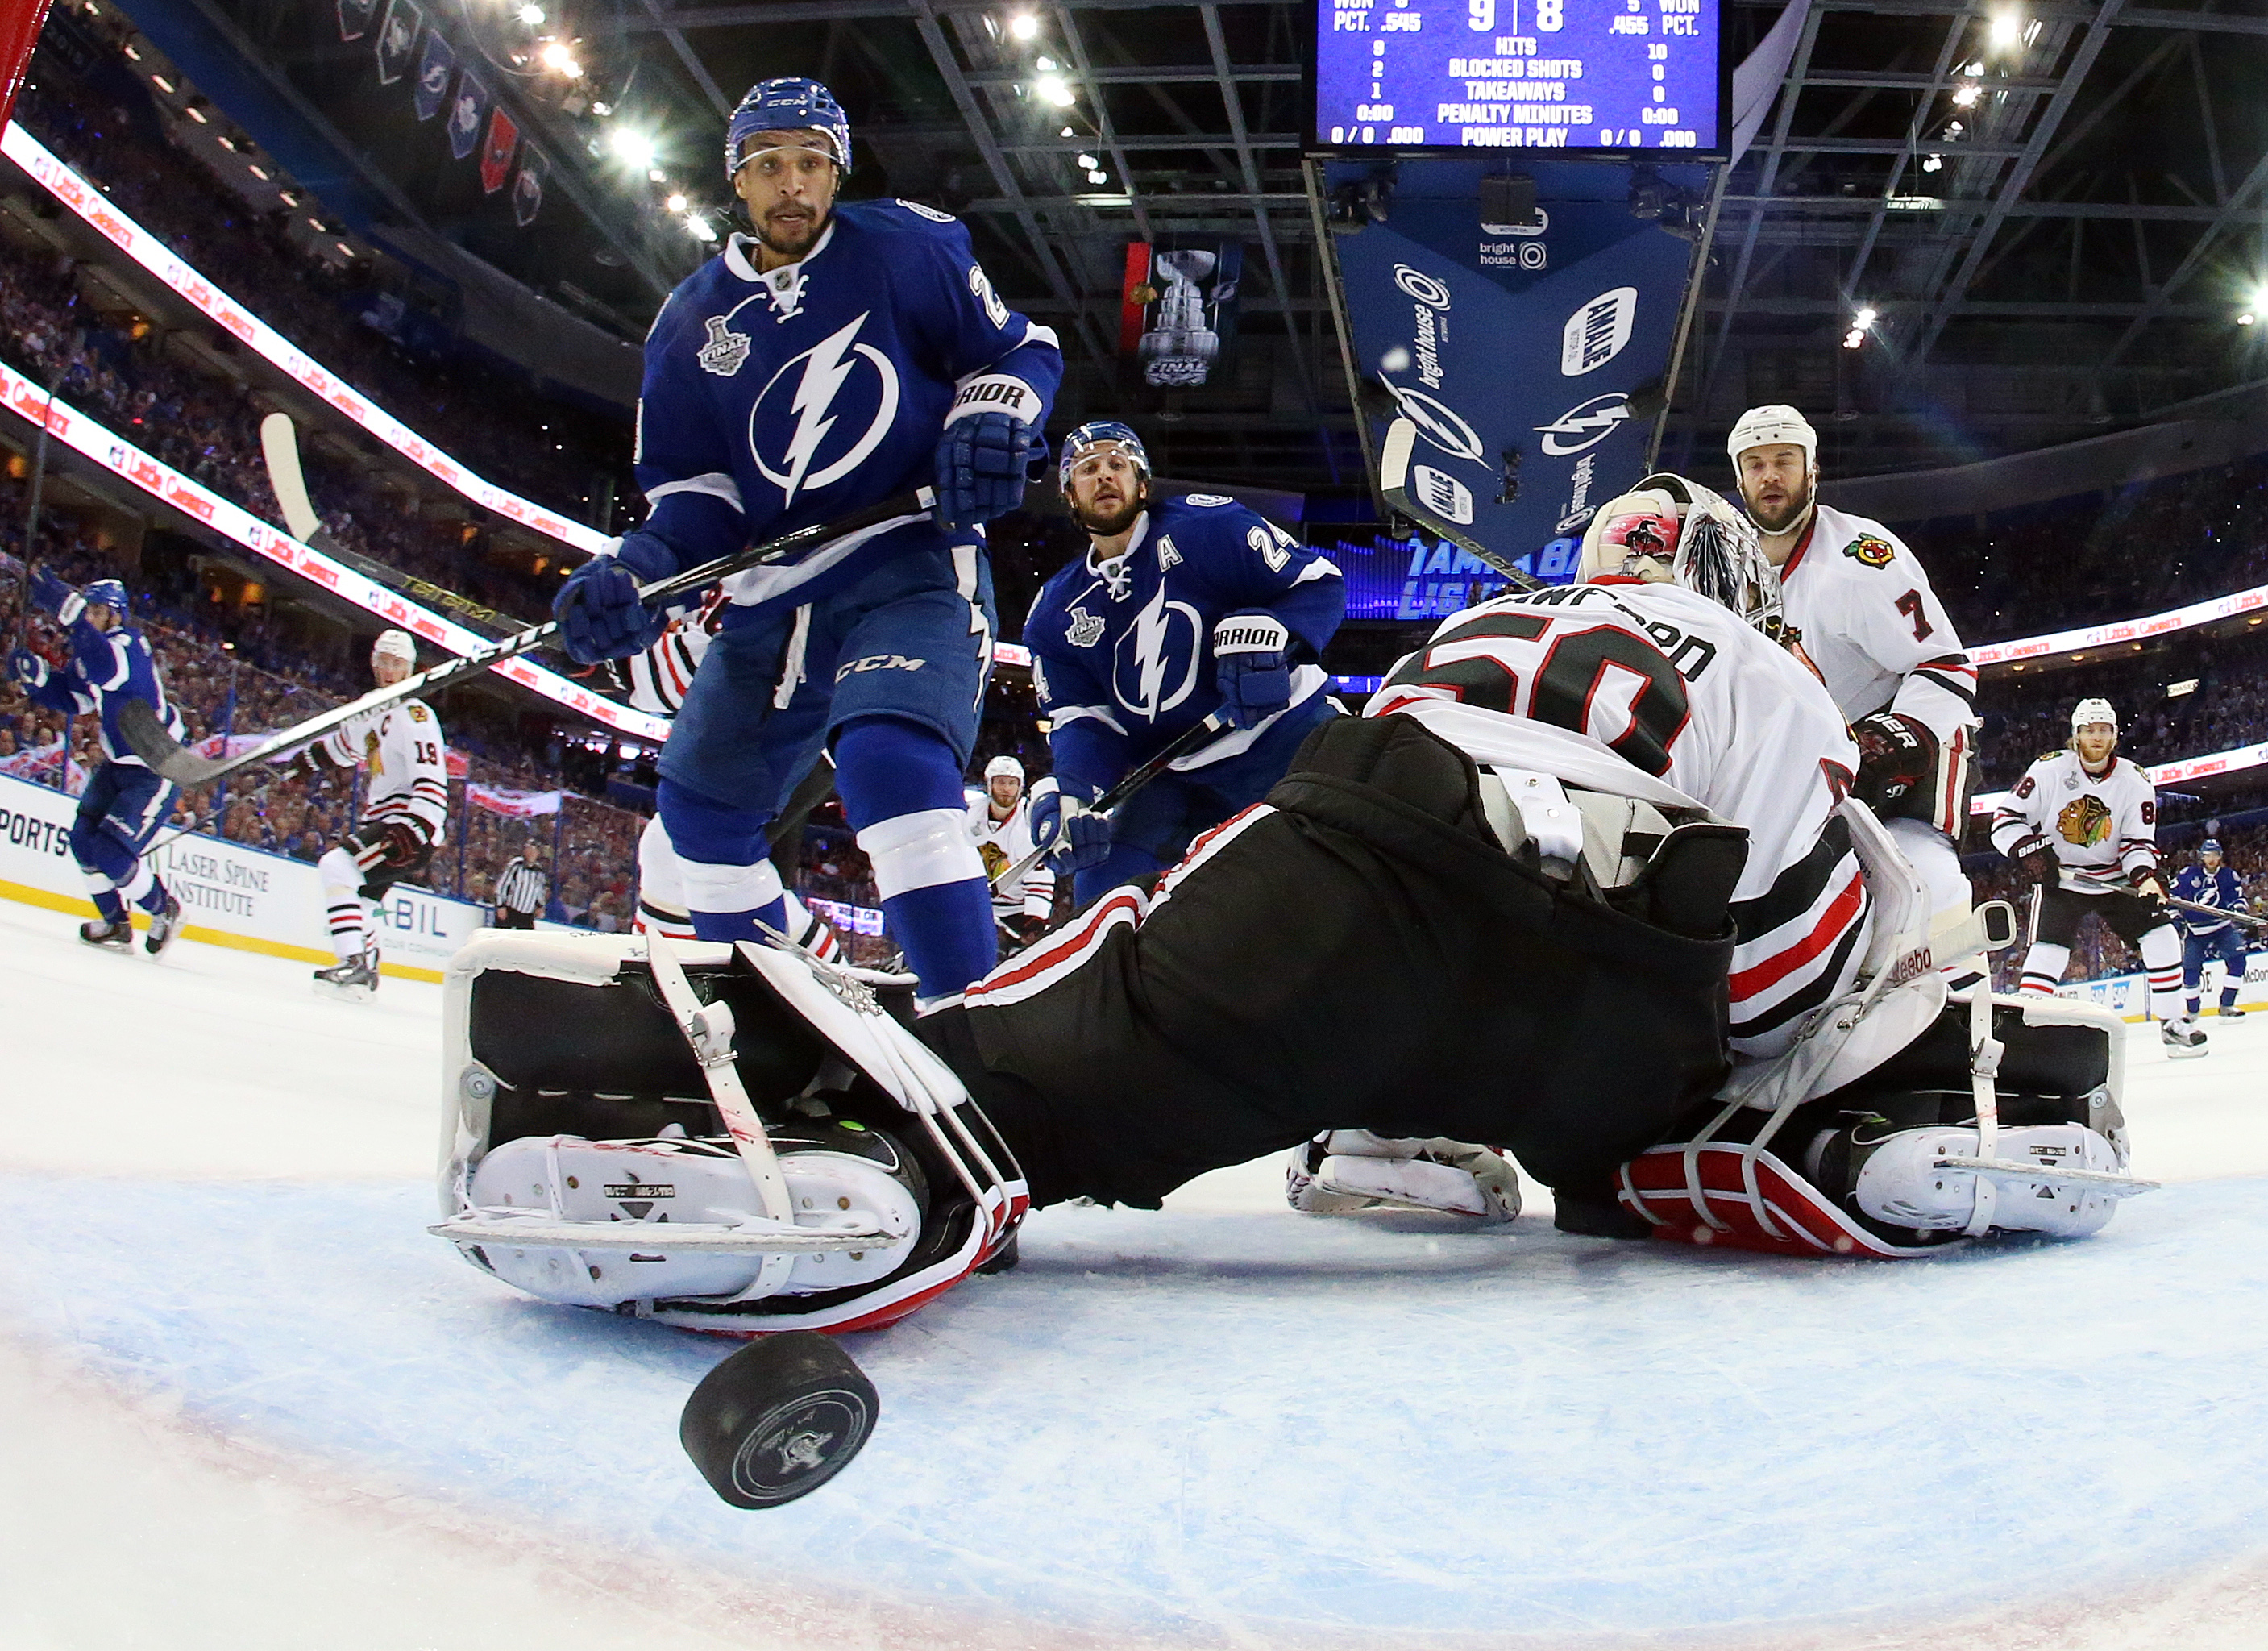 Tampa Bay Lightning right wing J.T. Brown, left, watches as Cedric Paquette's shot goes by Chicago Blackhawks goalie Corey Crawford during the first period in Game 2 of the NHL hockey Stanley Cup Final in Tampa, Fla., Saturday, June 6, 2015. (Bruce Bennet